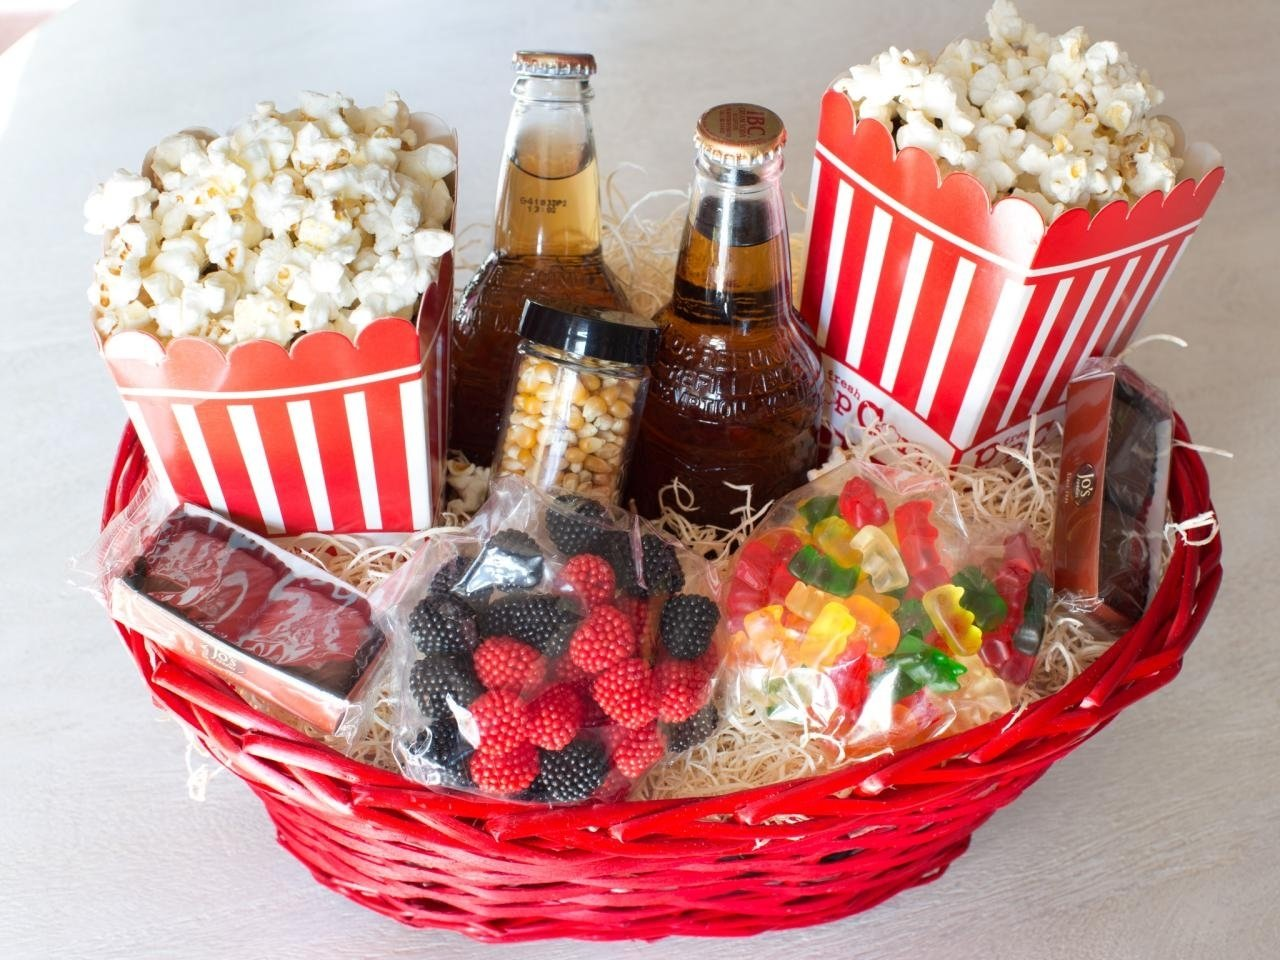 10 Unique Movie Themed Gift Basket Ideas 2019